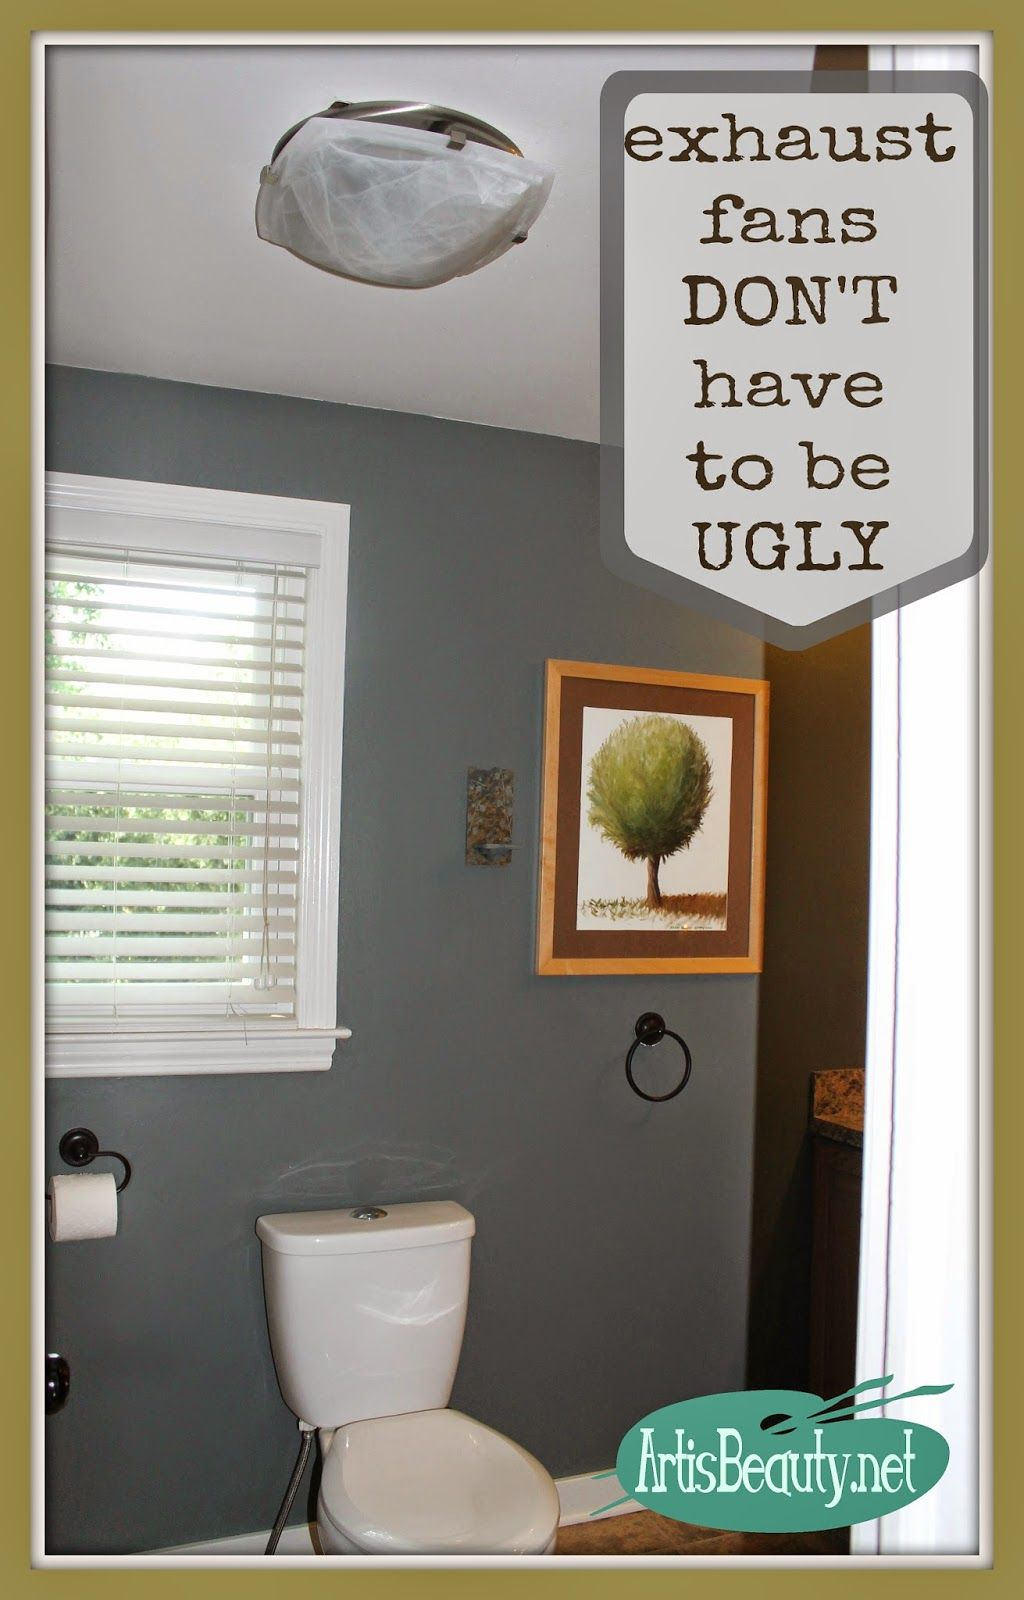 Karin Of The Blog Art Is Beauty Replaced Her Bathroom Exhaust - Sidewall bathroom exhaust fan for bathroom decor ideas